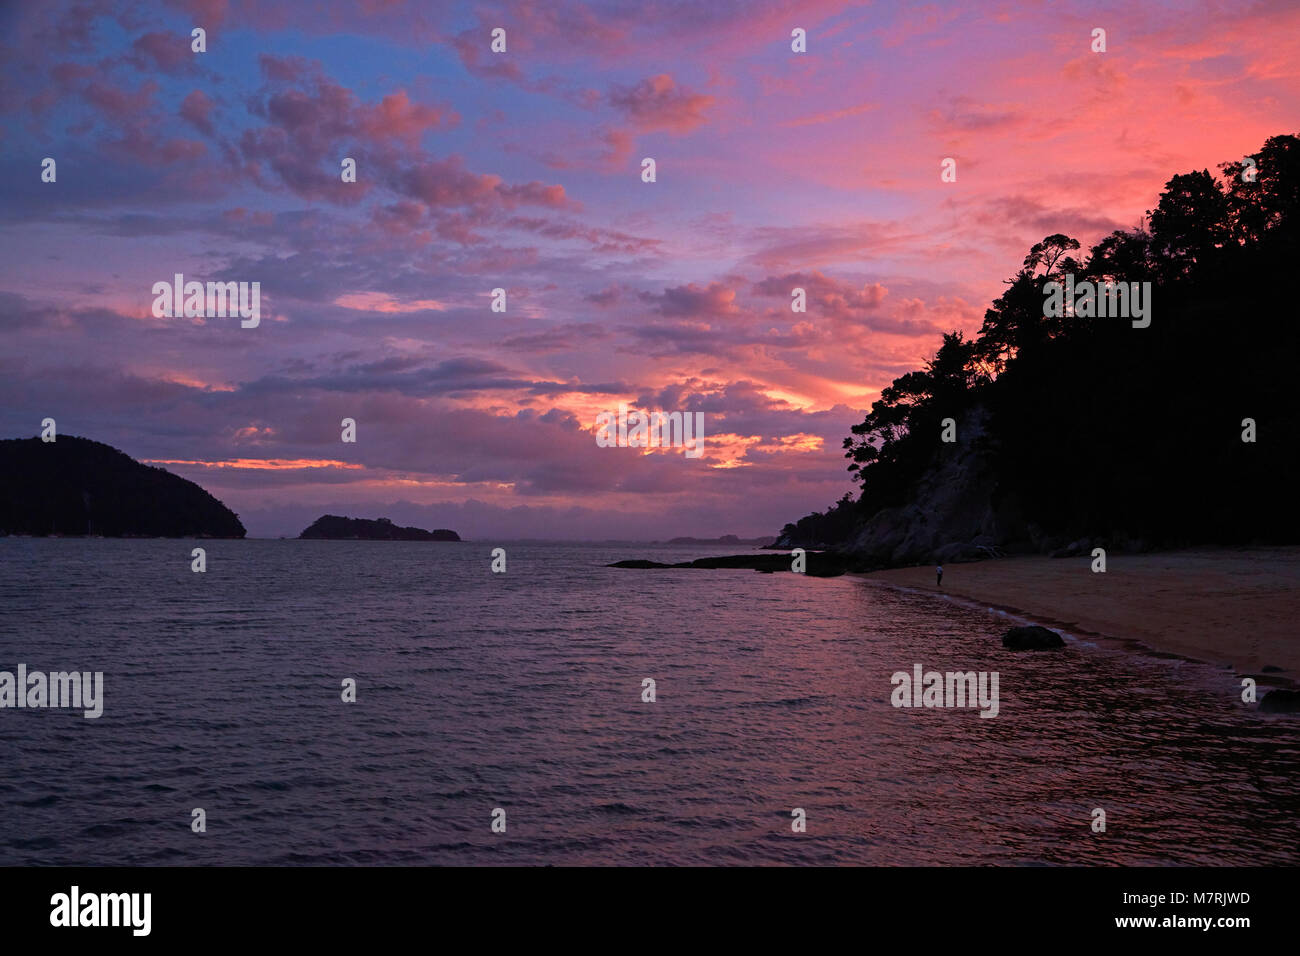 Observation Beach at sunset, Abel Tasman National Park, Nelson Region, South Island, New Zealand - Stock Image